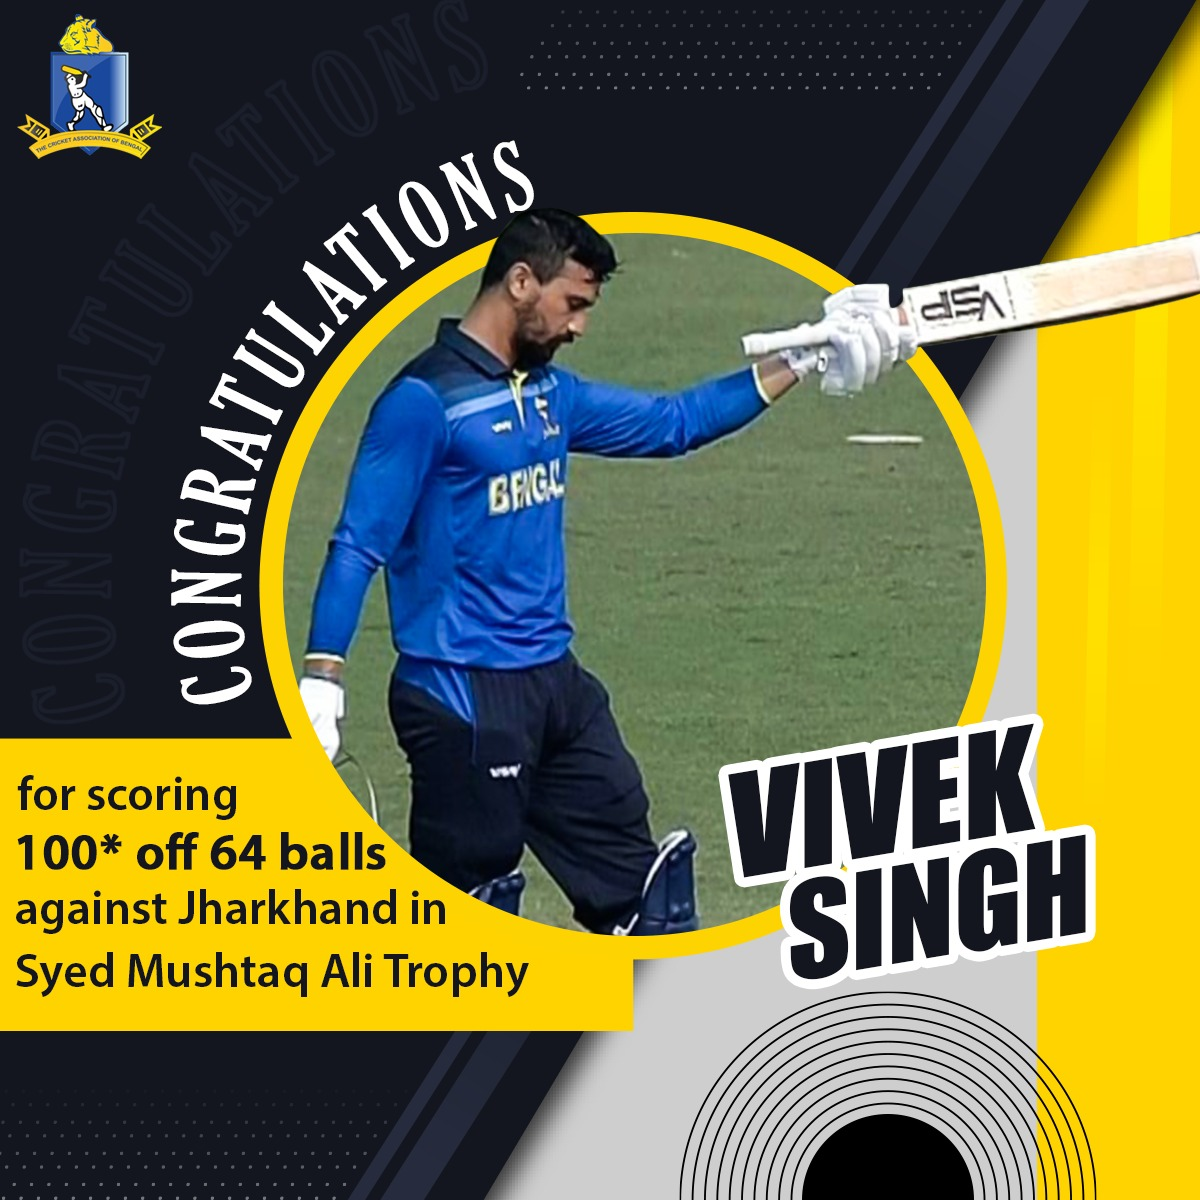 Outstanding #VivekSingh wins it again for #TeamBengal! His maiden unbeaten T20 century propels Bengal to a victory against Jharkhand.   #CAB #SyedMushtaqAliTrophy #JHAvBEN